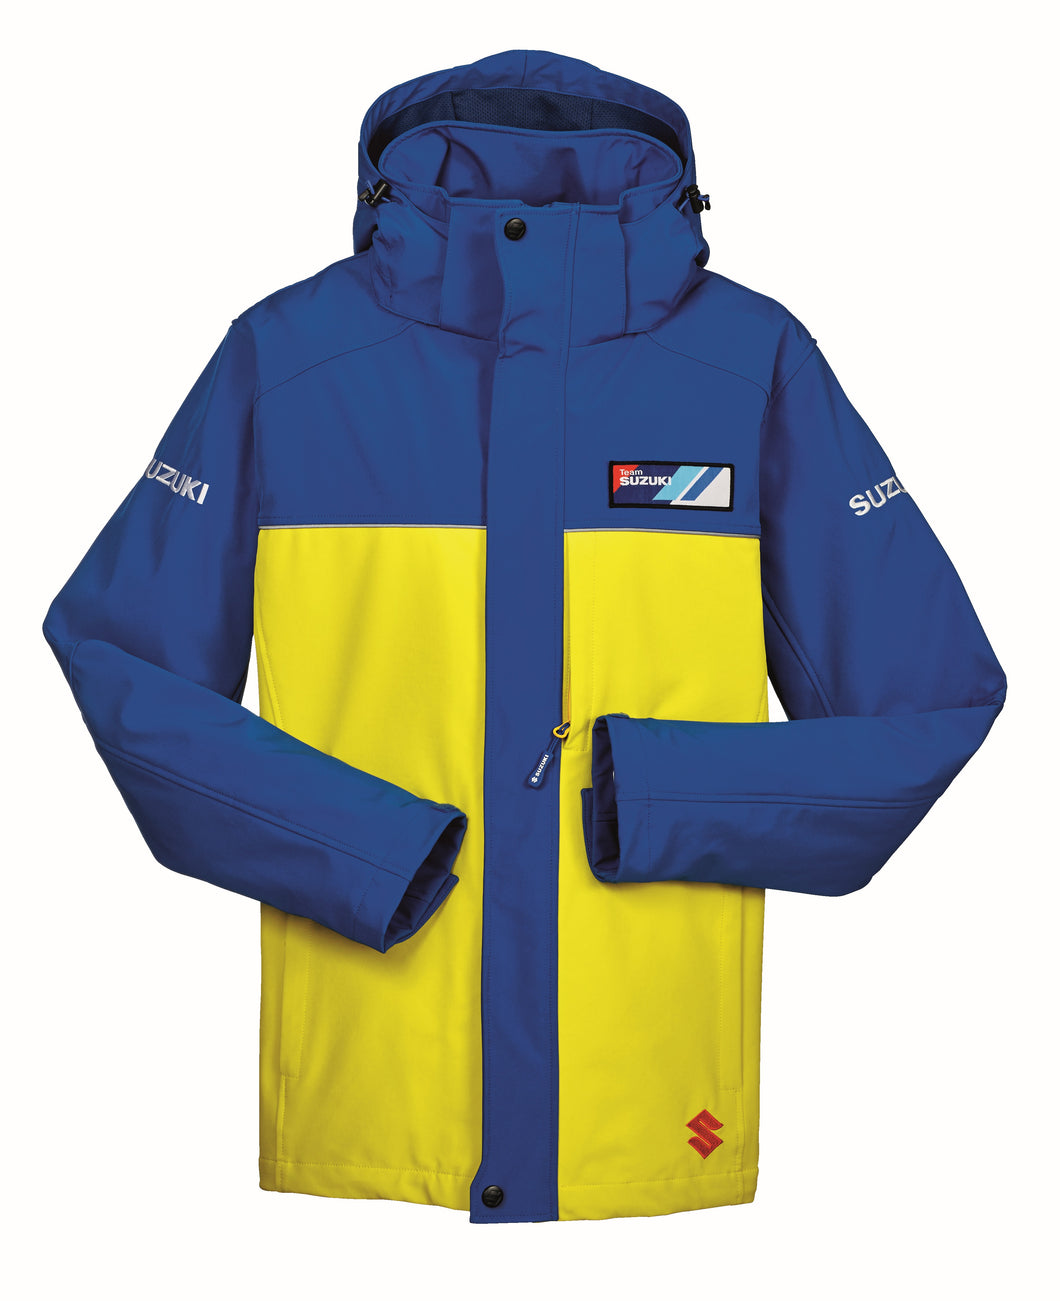 TEAM YELLOW WATERPROOF JACKET